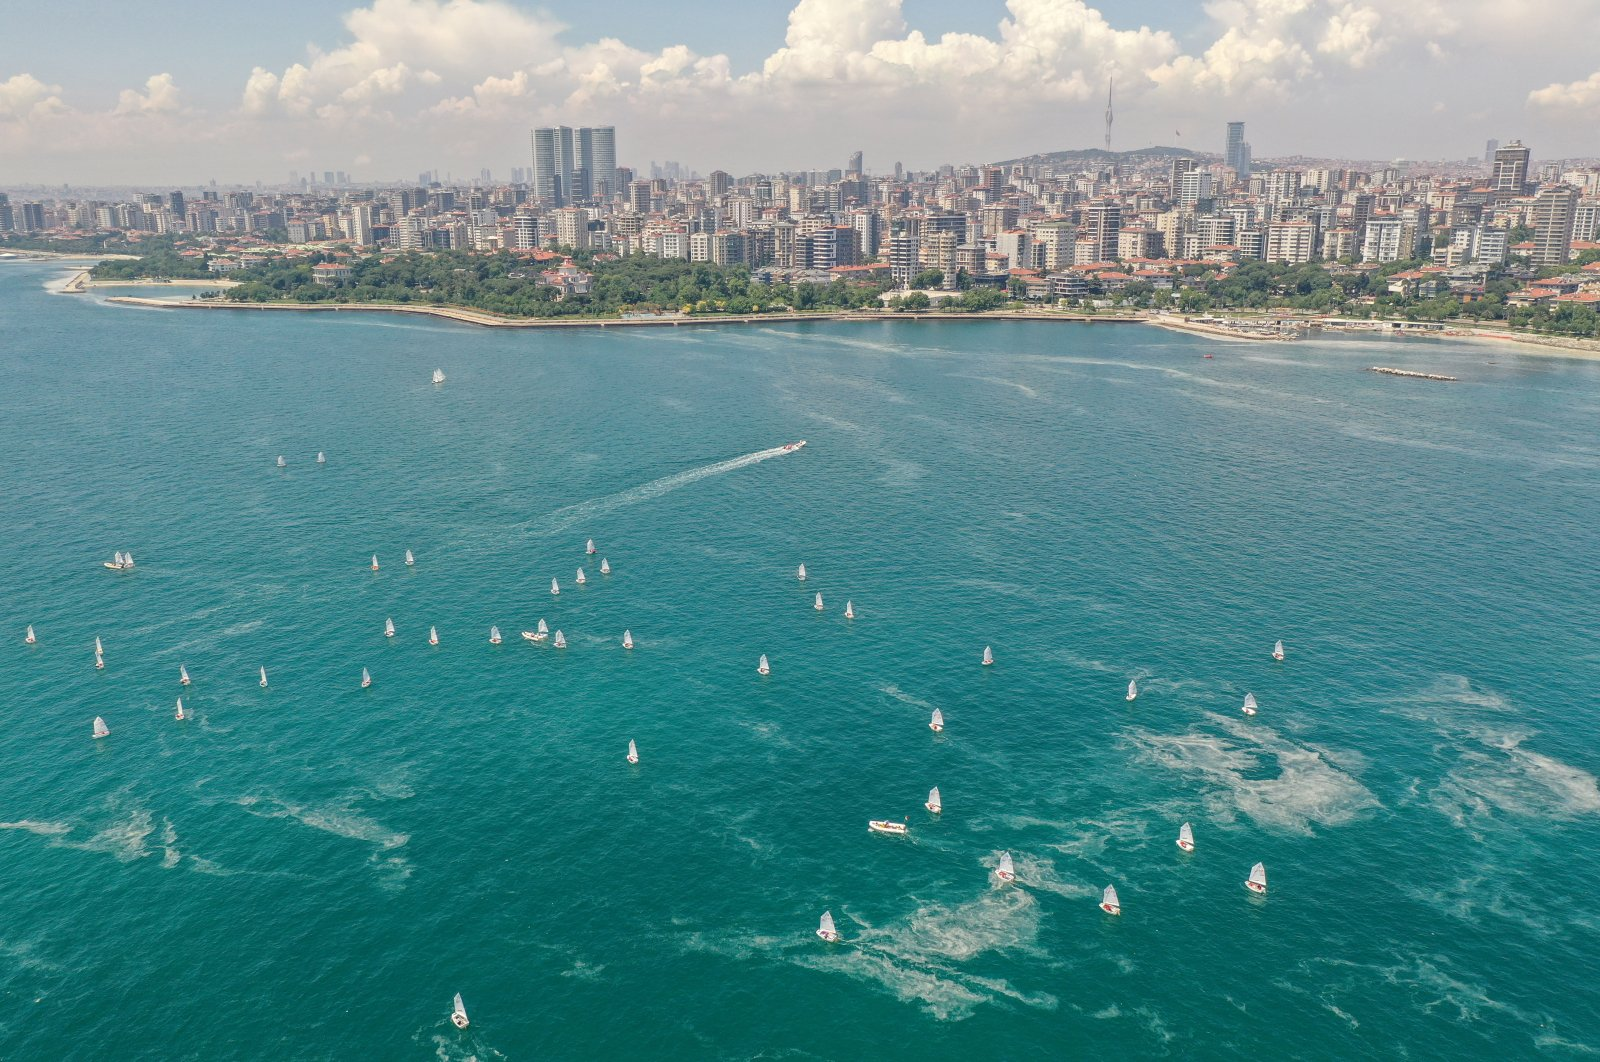 """Aerial view of boats of the Optimist and Laser international classes competing during a race as the sea is partly covered by """"sea snot,"""" a thick slimy layer of the organic matter also known as marine mucilage, spreading through the Sea of Marmara and posing a threat to marine life and the fishing industry, Istanbul, Turkey June 13, 2021. (Reuters Photo)"""